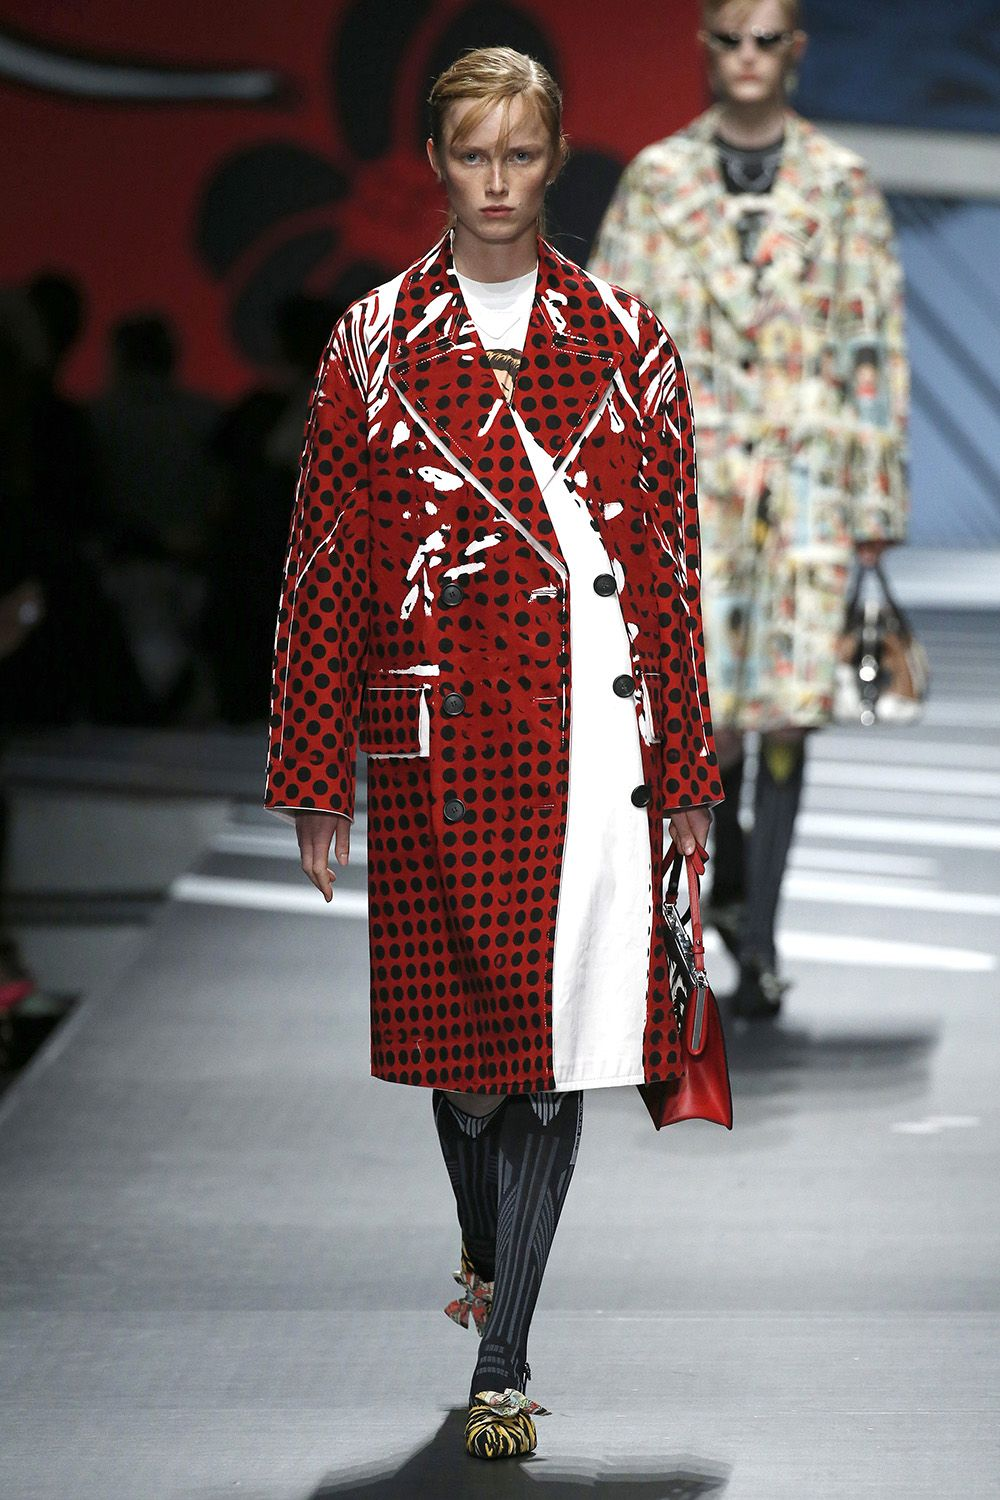 "<p>This is for more of an entrance-making scenario, but in a red patent slicker (preferably Prada), you don't even have to toss it onto someone's desk for everybody to go ""gird your loins."" And given that <a href=""http://www.marieclaire.com/career-advice/news/a15322/office-cold-air-conditioning/"" target=""_blank"" data-tracking-id=""recirc-text-link"">air-conditioning is sexist</a>, it wouldn't be so weird if you kept it on.</p><p><em data-redactor-tag=""em"" data-verified=""redactor"">Shop similar: Topshop, $170</em></p><p><strong data-redactor-tag=""strong"">BUY IT:&nbsp&#x3B;</strong><span class=""redactor-invisible-space"" data-verified=""redactor"" data-redactor-tag=""span"" data-redactor-class=""redactor-invisible-space""><strong data-redactor-tag=""strong""><a href=""http://us.topshop.com/en/tsus/product/clothing-70483/jackets-coats-2390895/vinyl-trench-coat-6926592?bi=0&amp&#x3B;ps=20"" target=""_blank"" data-tracking-id=""recirc-text-link"">topshop.com</a>.</strong></span><span class=""redactor-invisible-space"" data-verified=""redactor"" data-redactor-tag=""span"" data-redactor-class=""redactor-invisible-space""></span></p>"